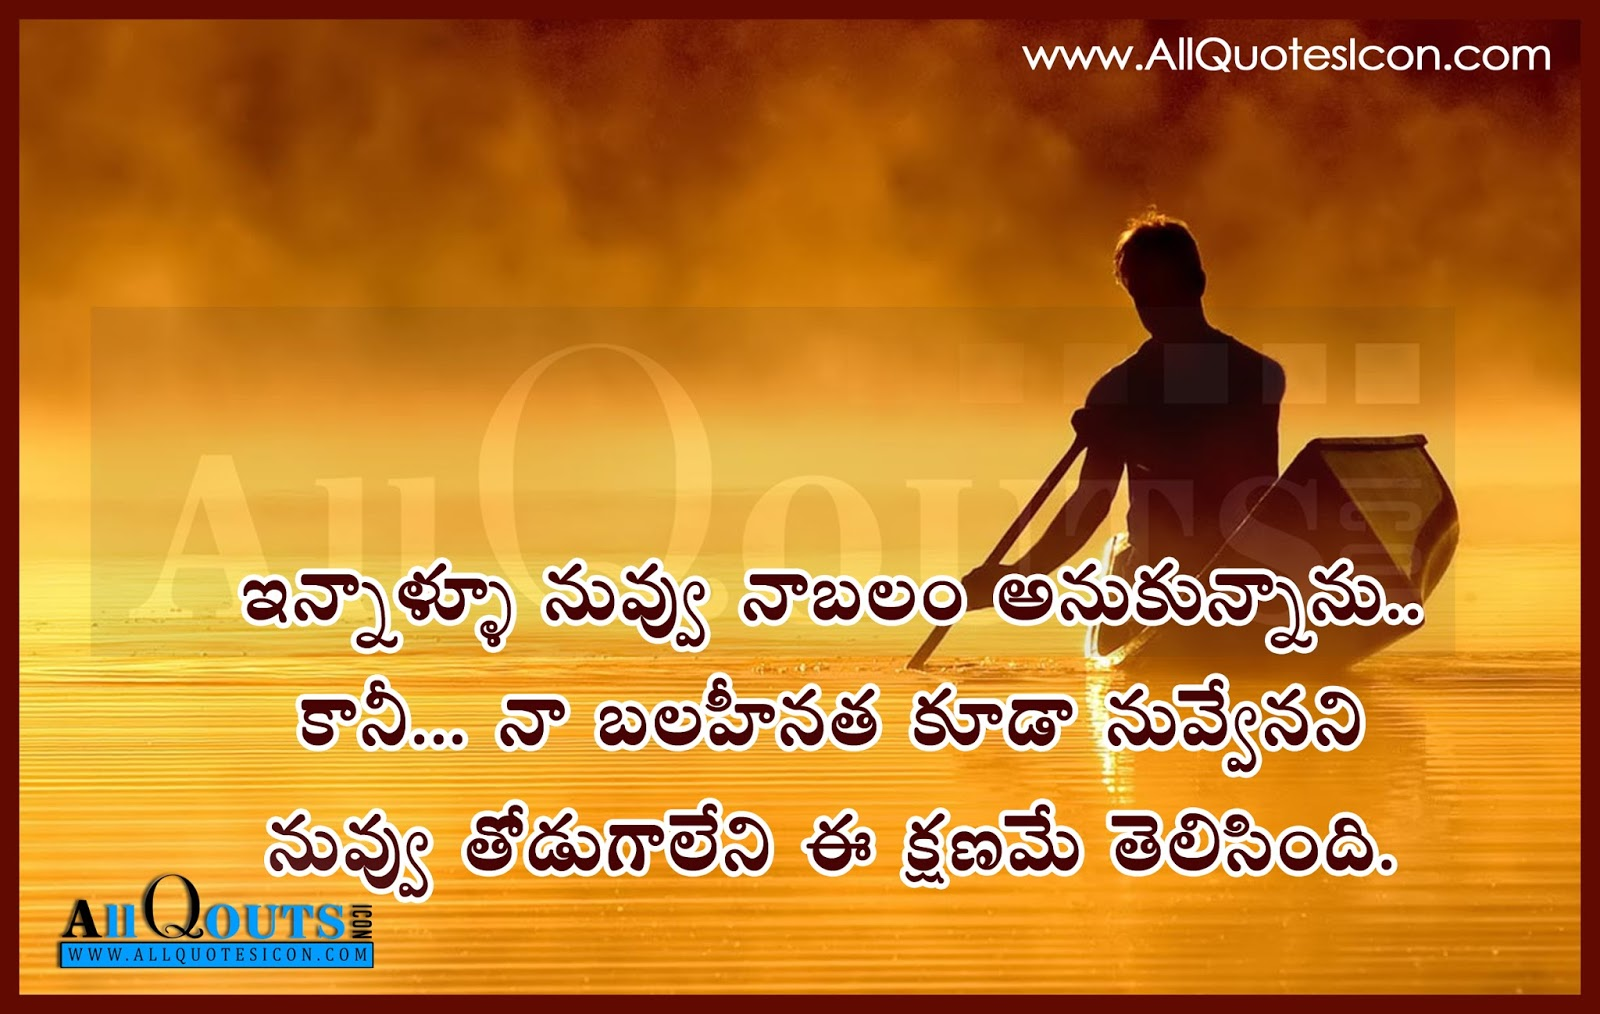 Telugu Love Quotes Images Motivation Inspiration Thoughts Sayings